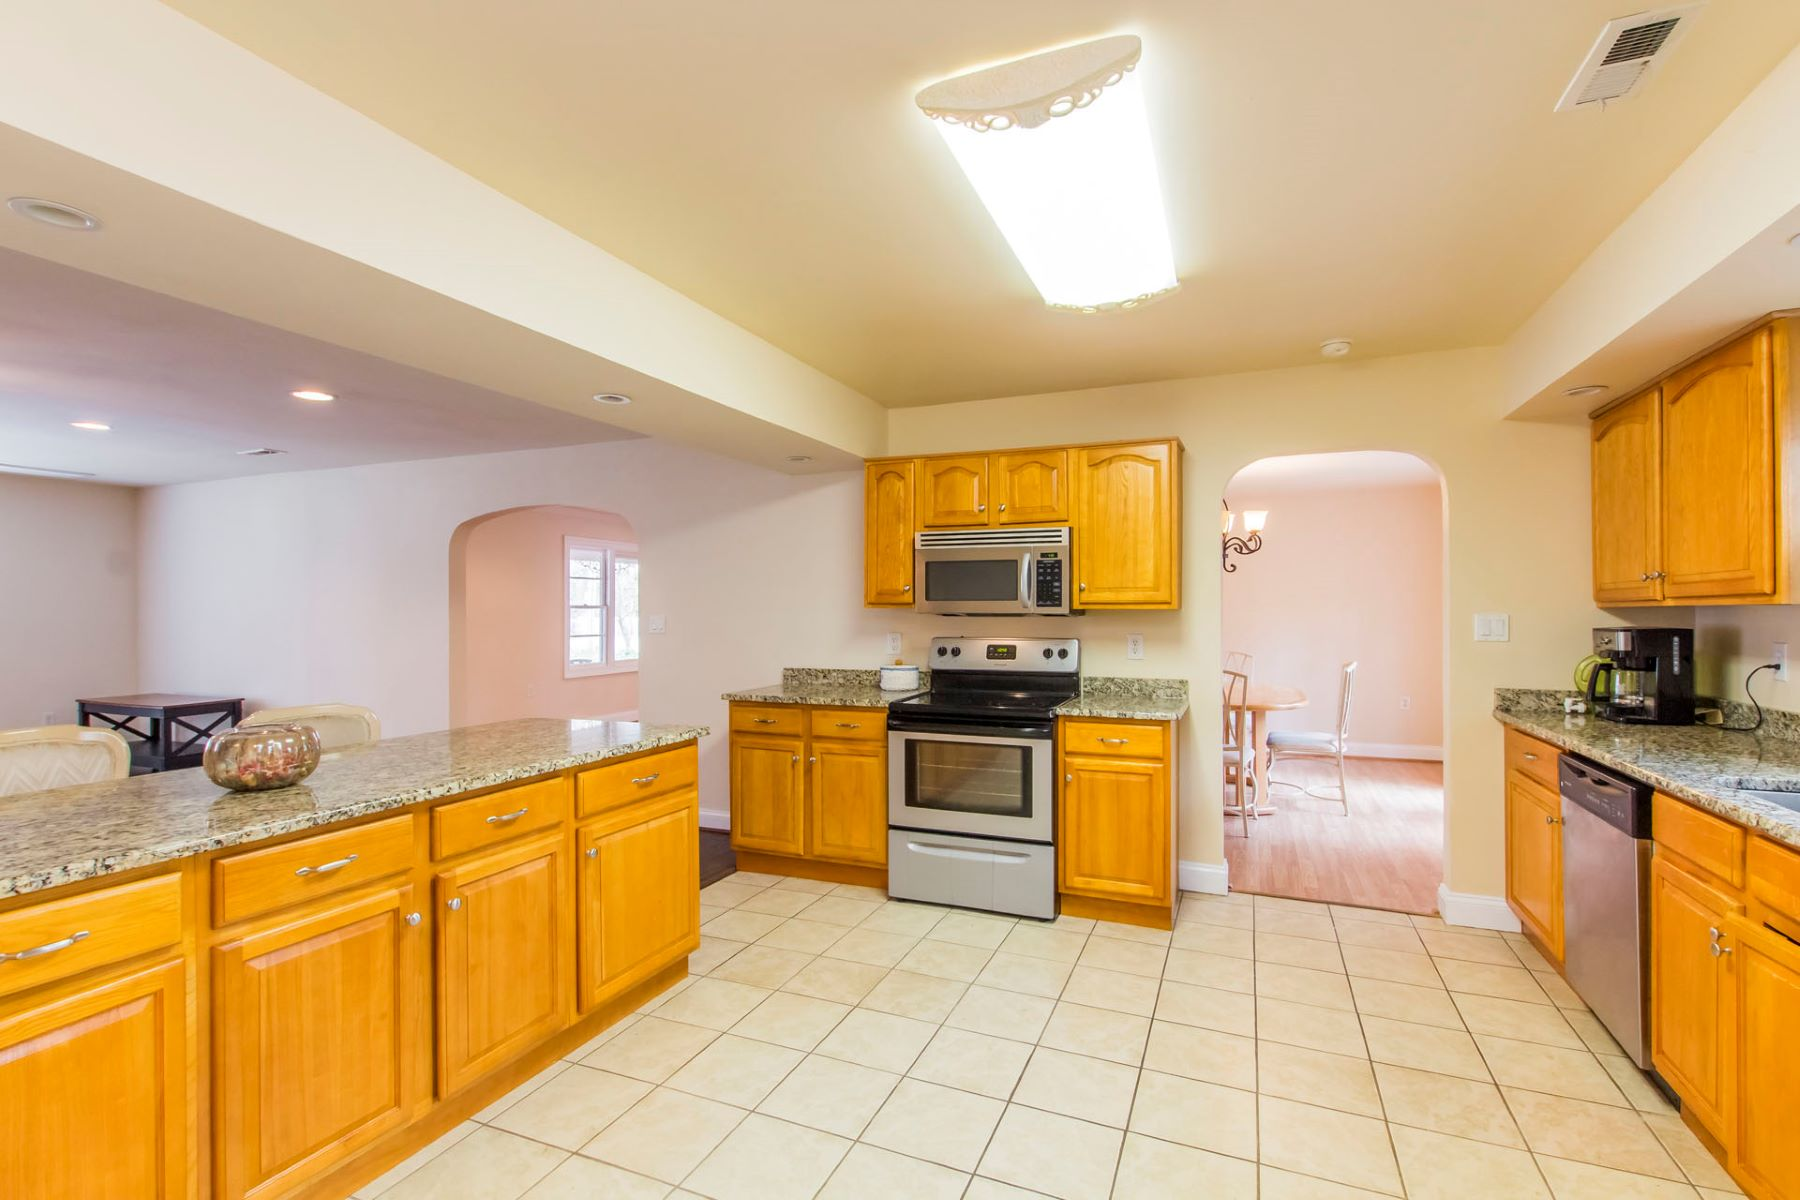 Single Family Home for Sale at Airline Blvd 3721 Airline Boulevard, Portsmouth, Virginia, 23701 United States